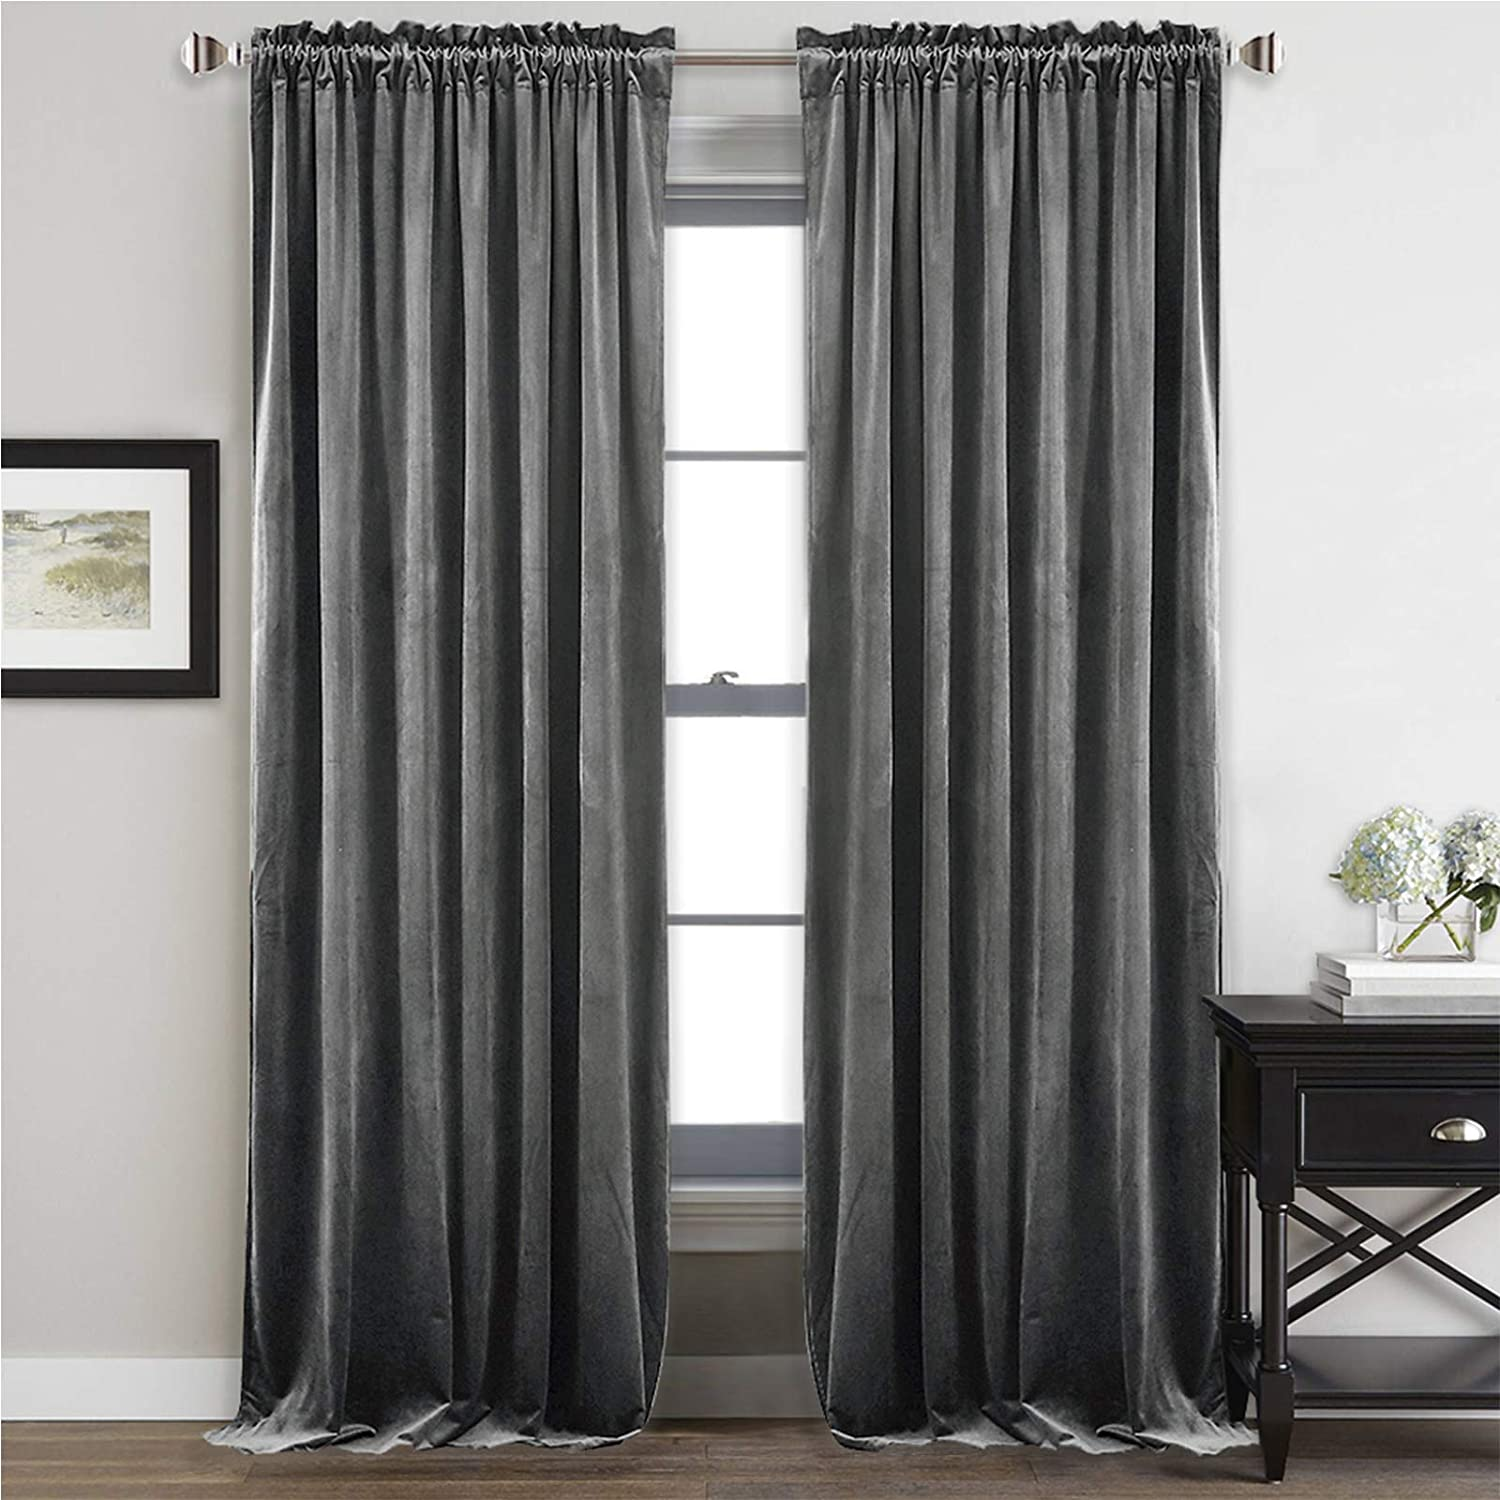 Amazon Com Stangh Gray Velvet Curtains 96 Inches Bedroom Luxury Velvet Curtain Panels Blackout Draperies Heat Insulated Sliding Door Panel Drapes 52 By 96 Inches Long 2 Panels Kitchen Dining